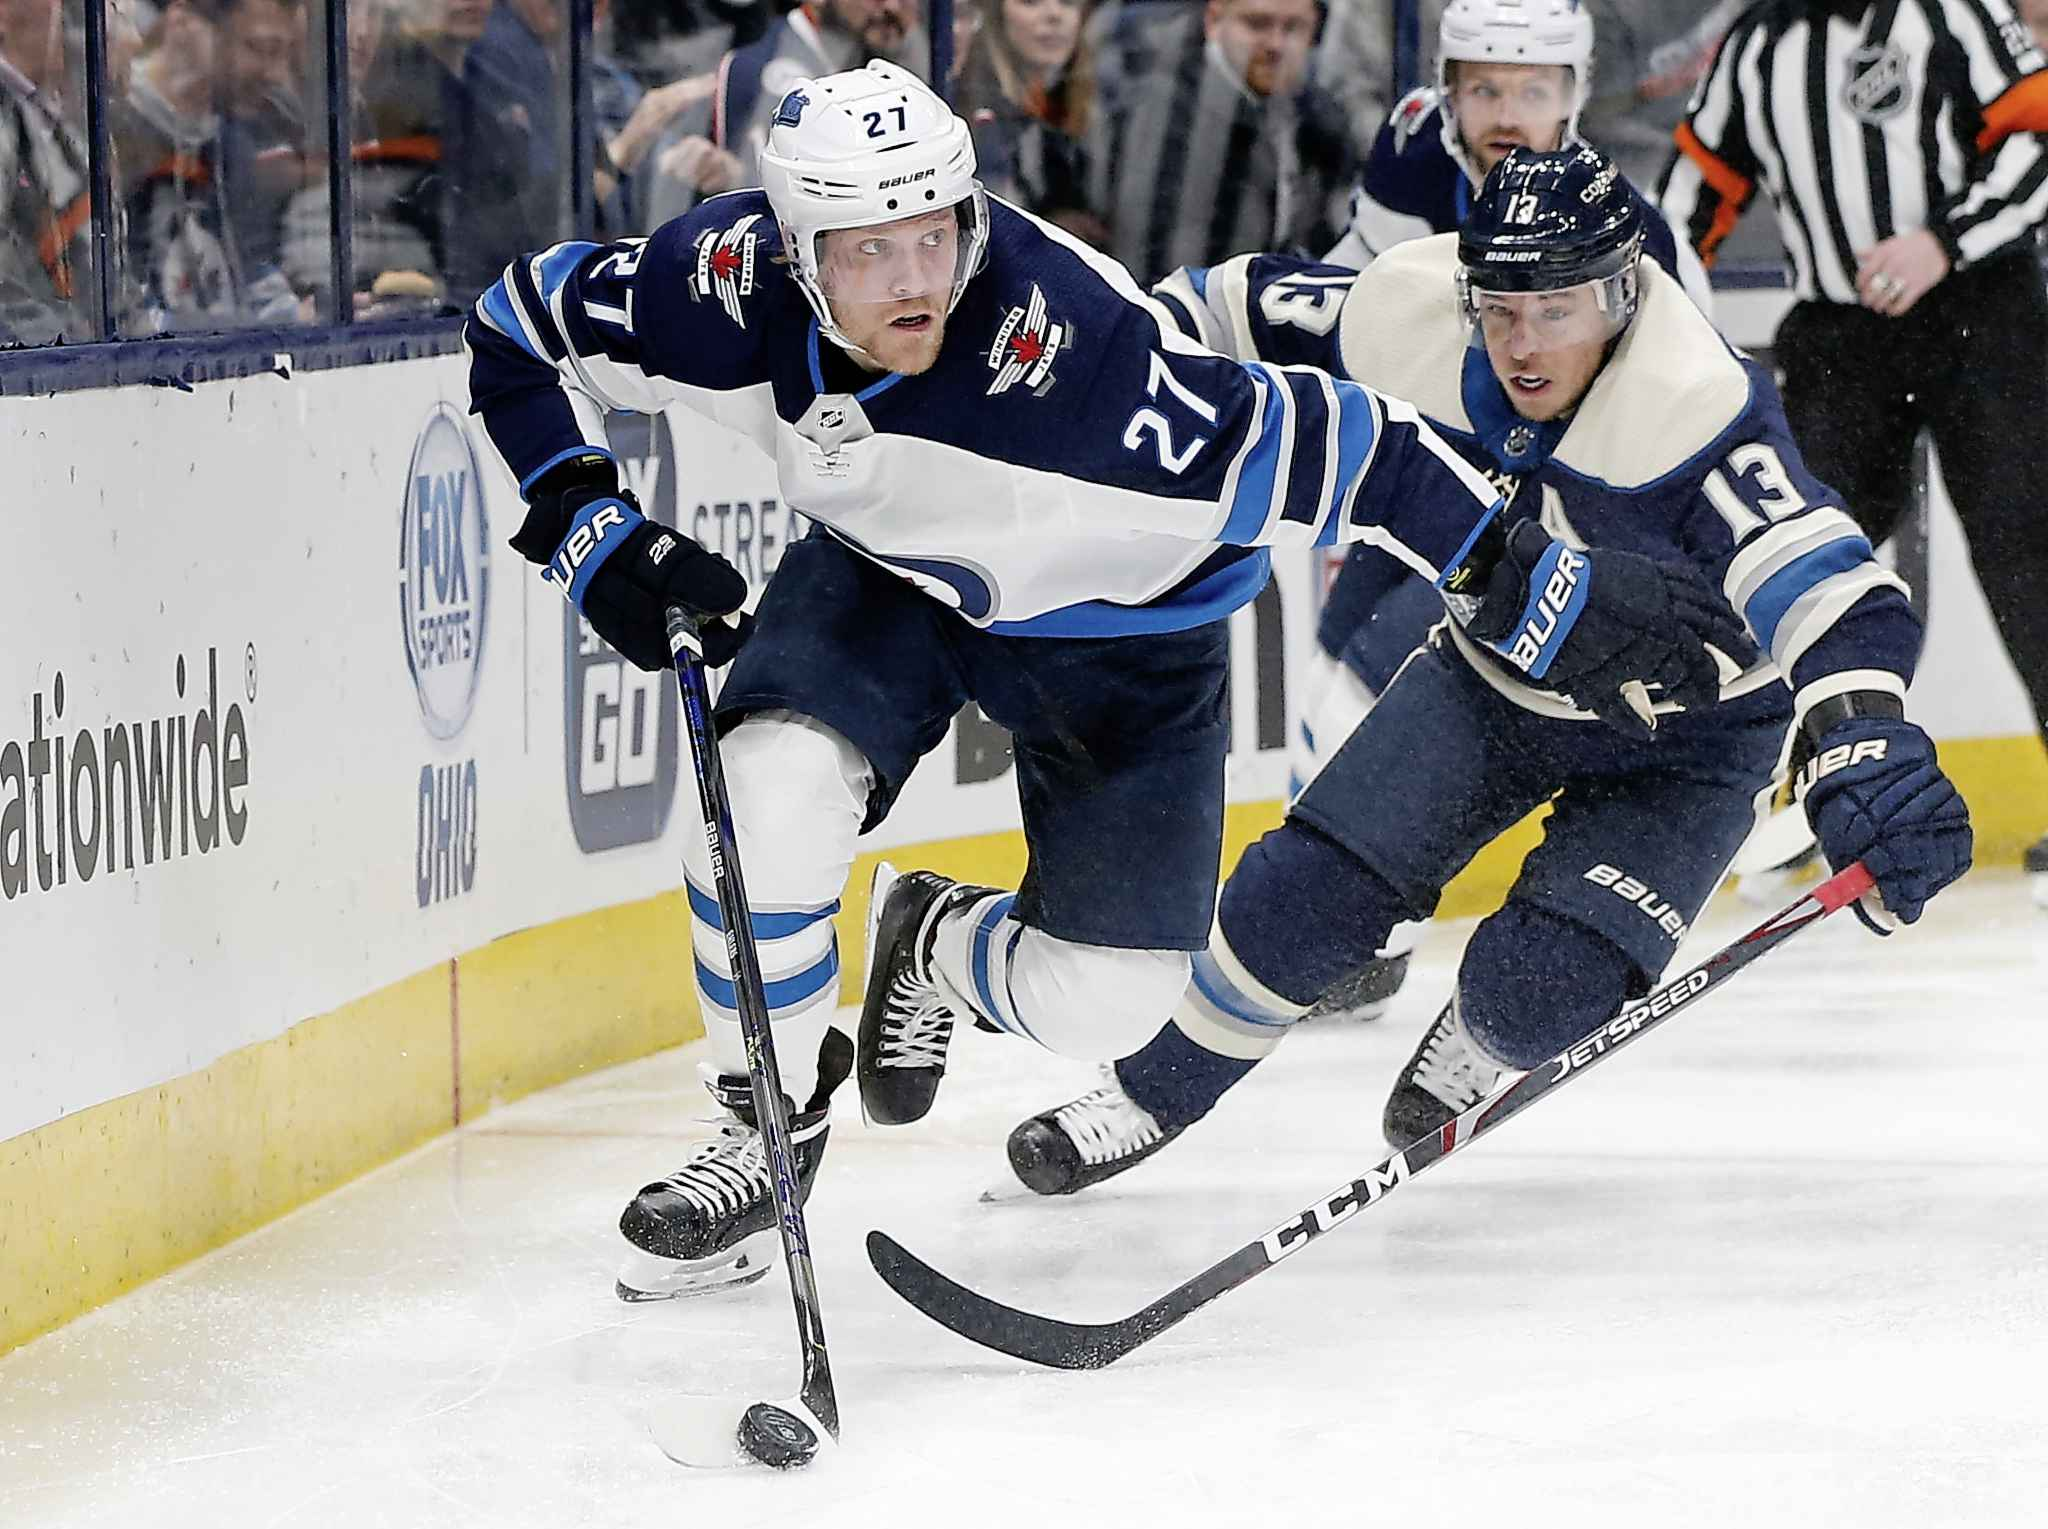 Winnipeg Jets' Nikolaj Ehlers tries to clear the puck as Columbus Blue Jackets' Cam Atkinson chases him behind the net during the second period.